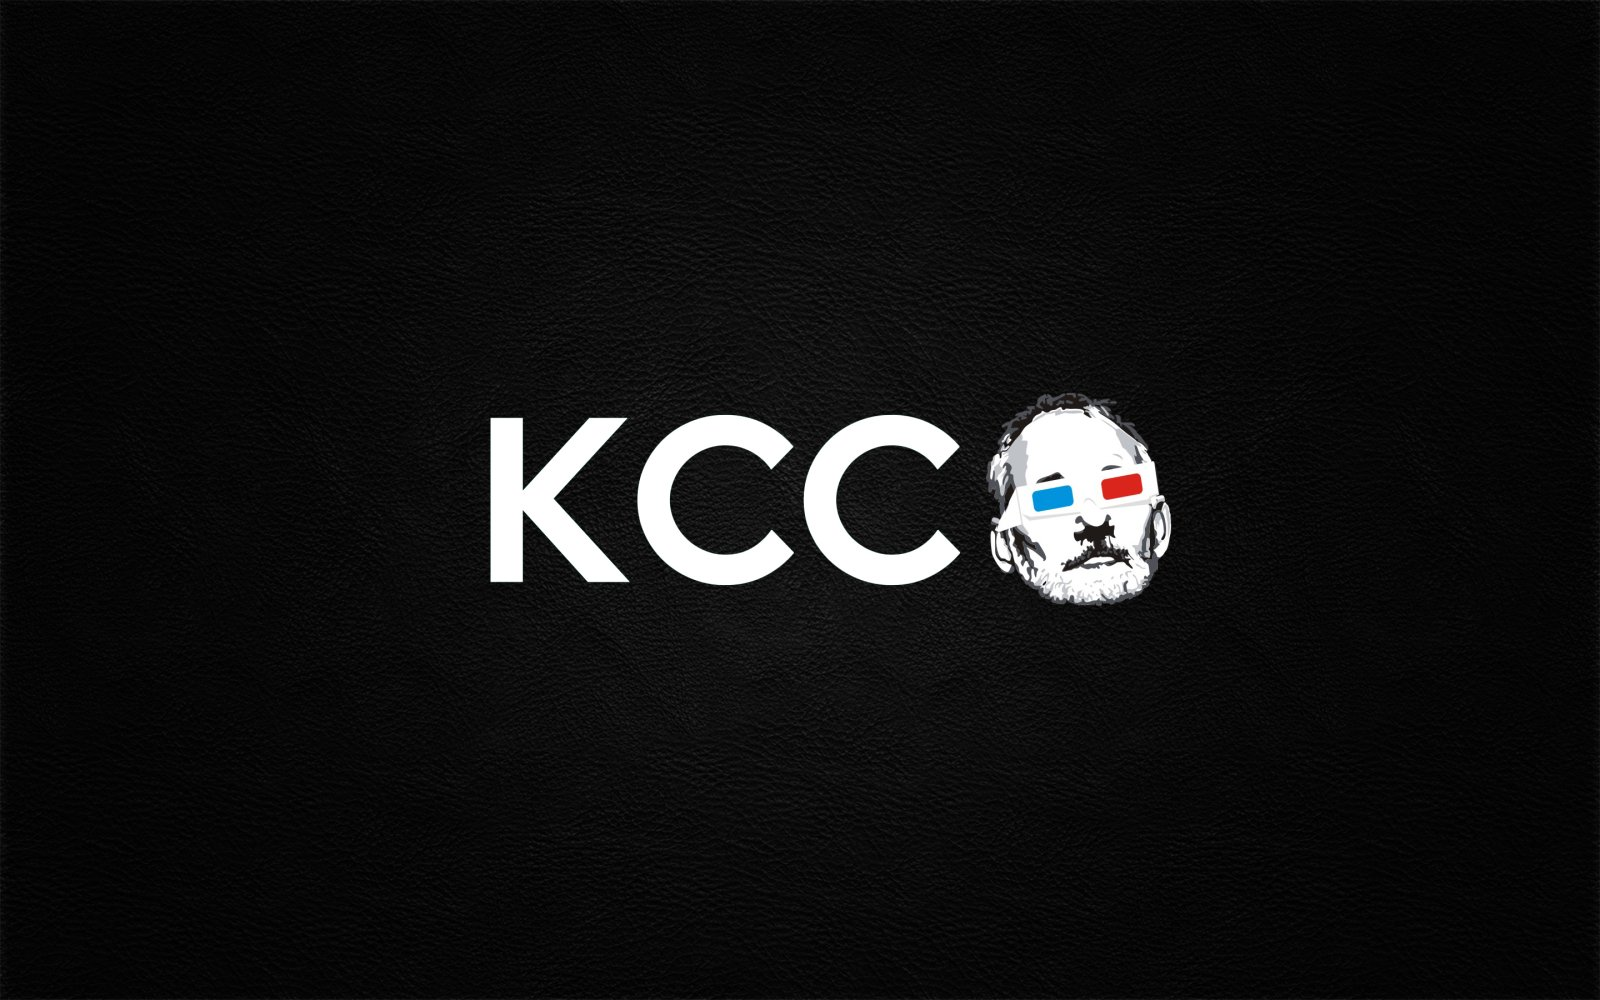 kcco bfm wallpaper in Signs Sayings Misc by Jason   Tapiture 1600x1000